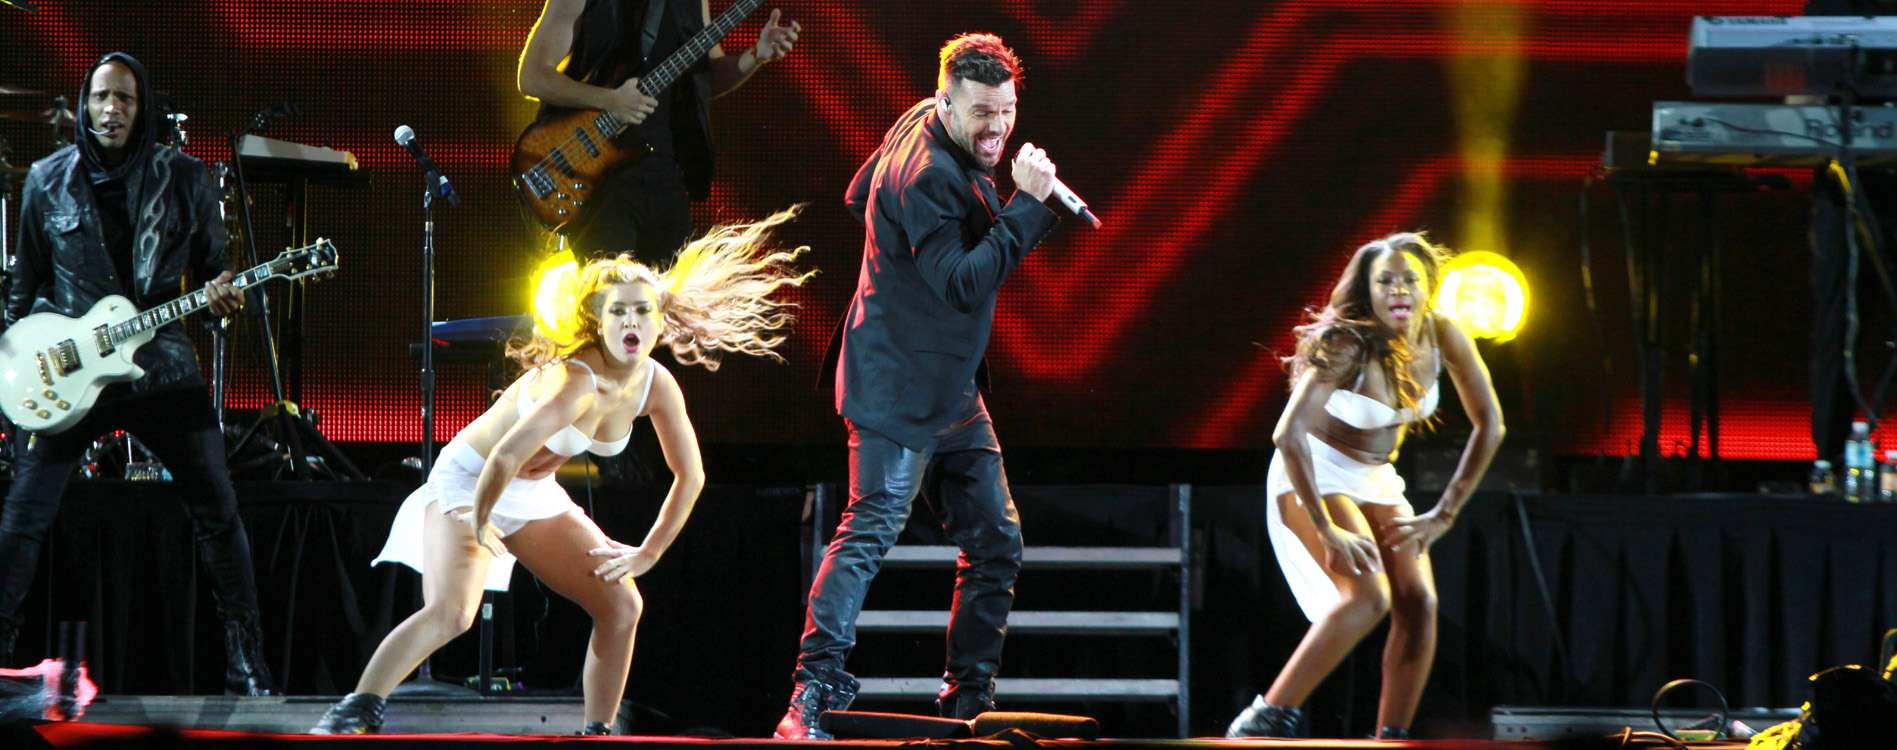 concierto exa 2014 ricky martin Foto: Photo AMC